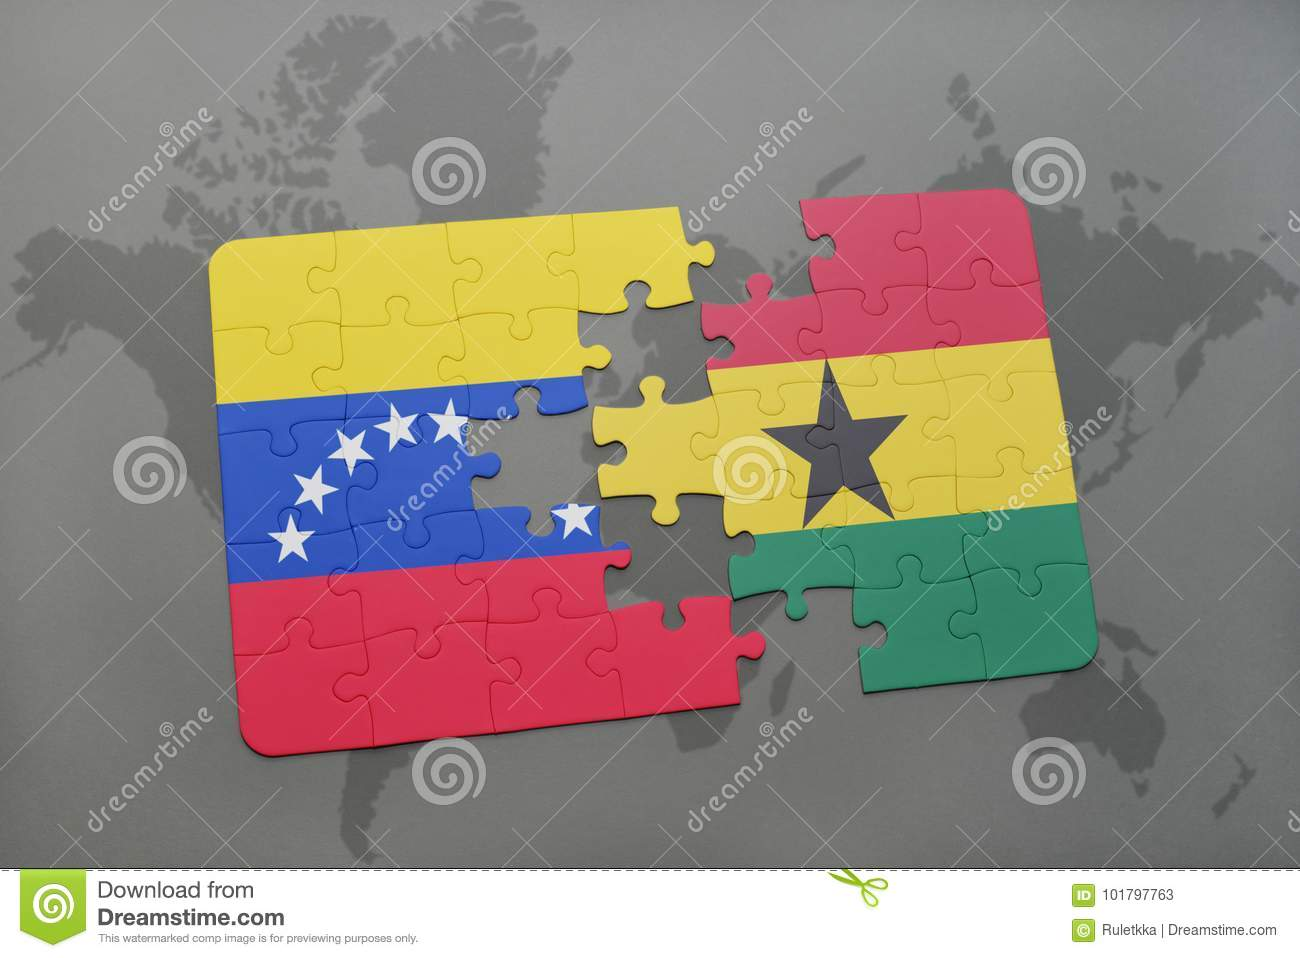 Ghana On A World Map.Puzzle With The National Flag Of Venezuela And Ghana On A World Map